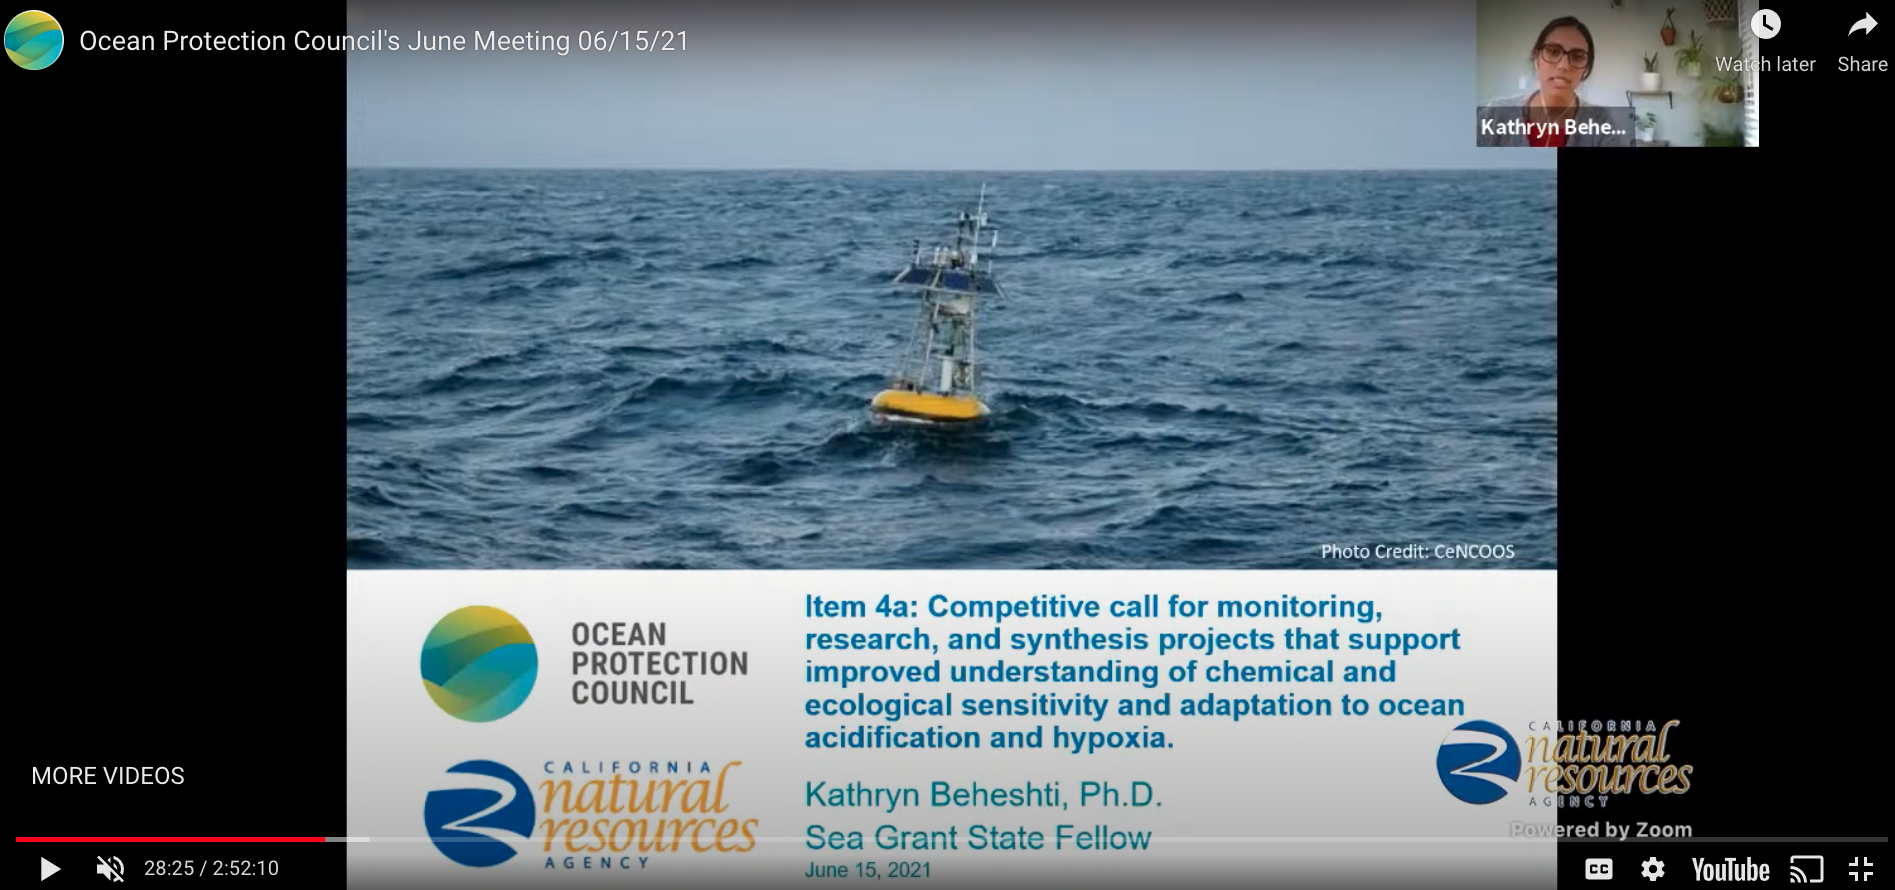 Kat presented at the June 2021 OPC Council Meeting a staff recommendation to disburse funds to CA Sea Grant to administer the solicitation for a Proposition 68 Ocean Acidification and Hypoxia Competitive Solicitation.